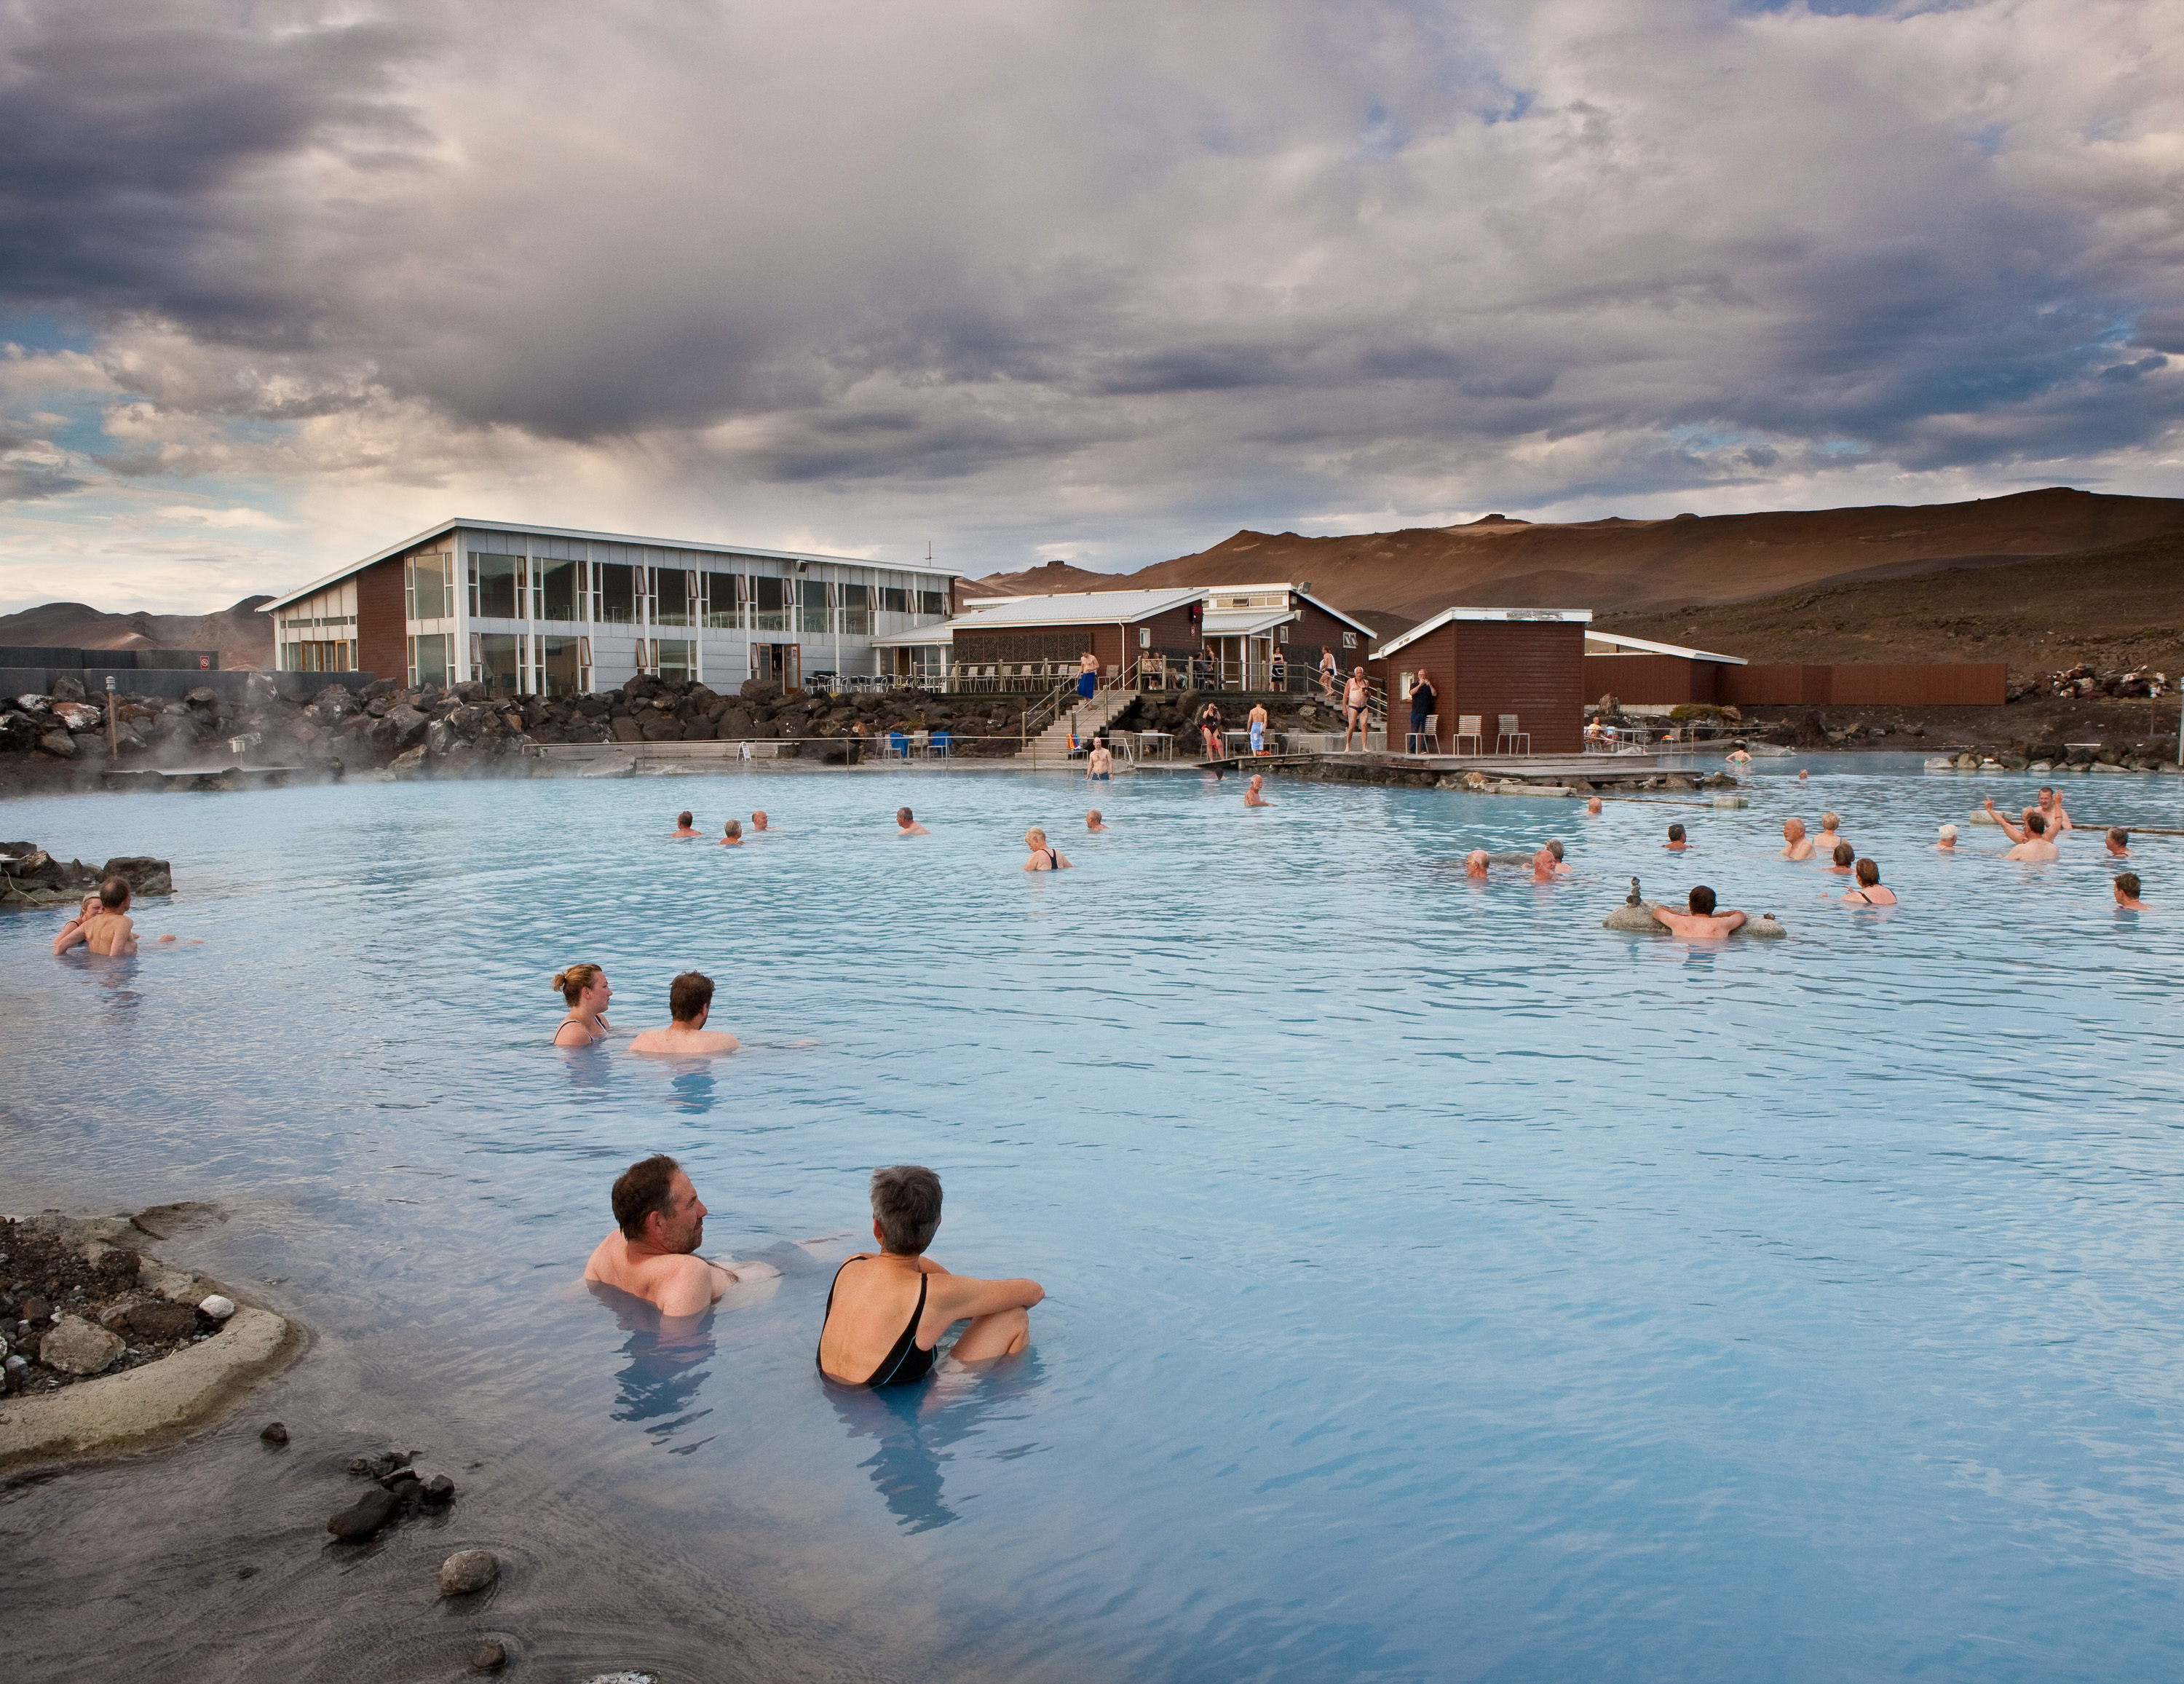 People relax in a natural blue pool under a blue sky.